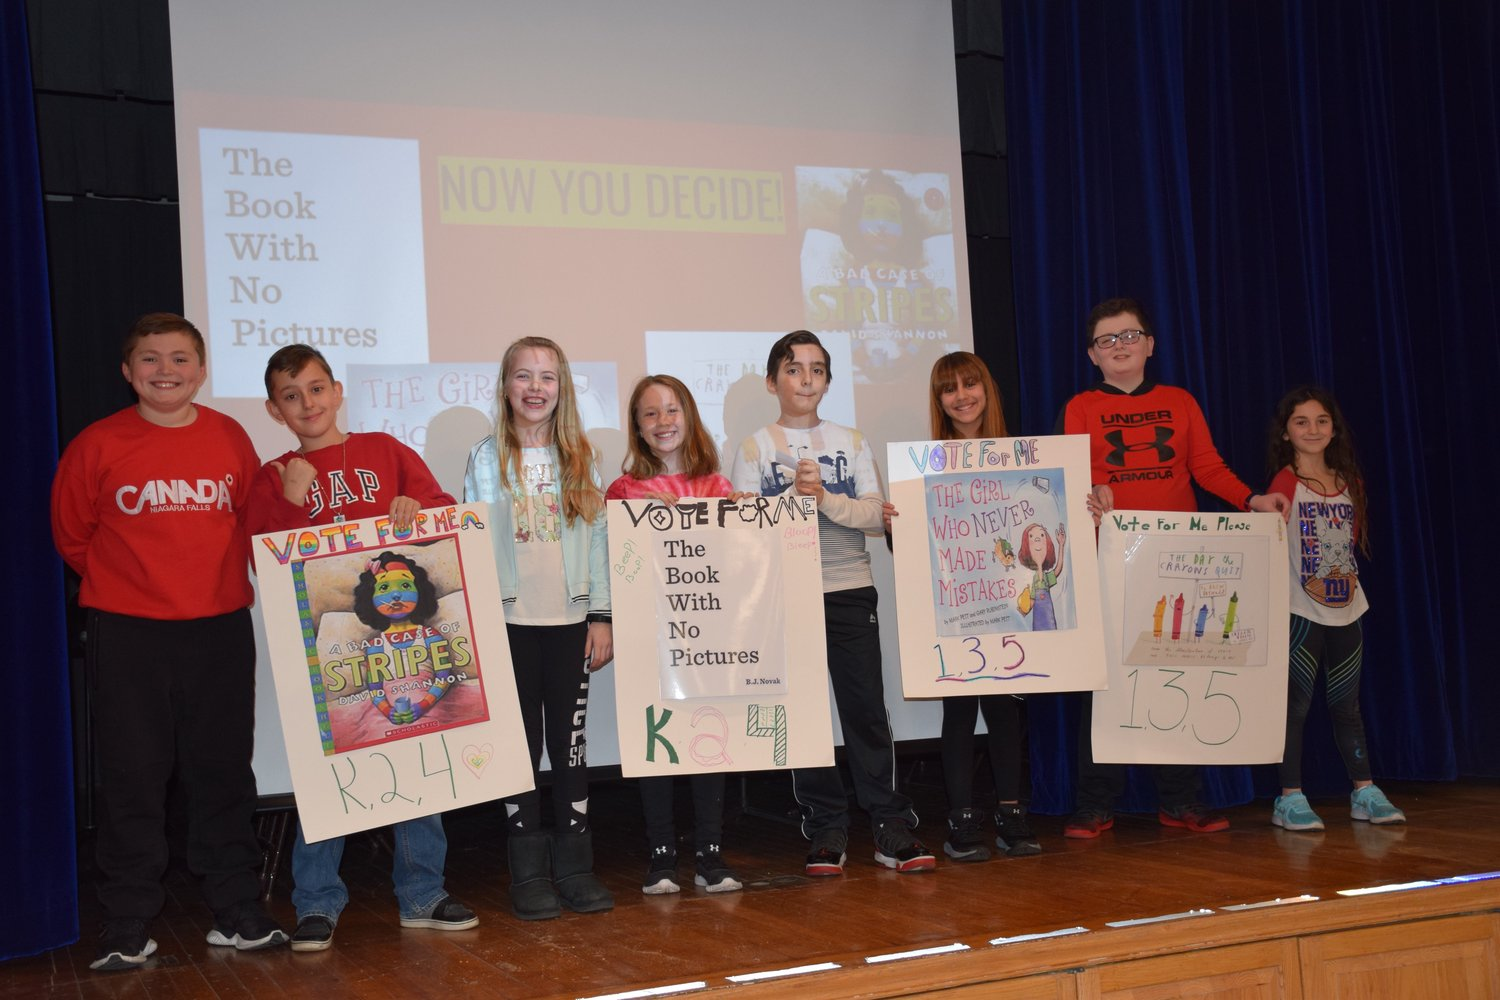 Students at Parkway Elementary School helped to unveil the final four books in the school's Tournament of Books during a Pick a Reading Partner pep rally on March 11.